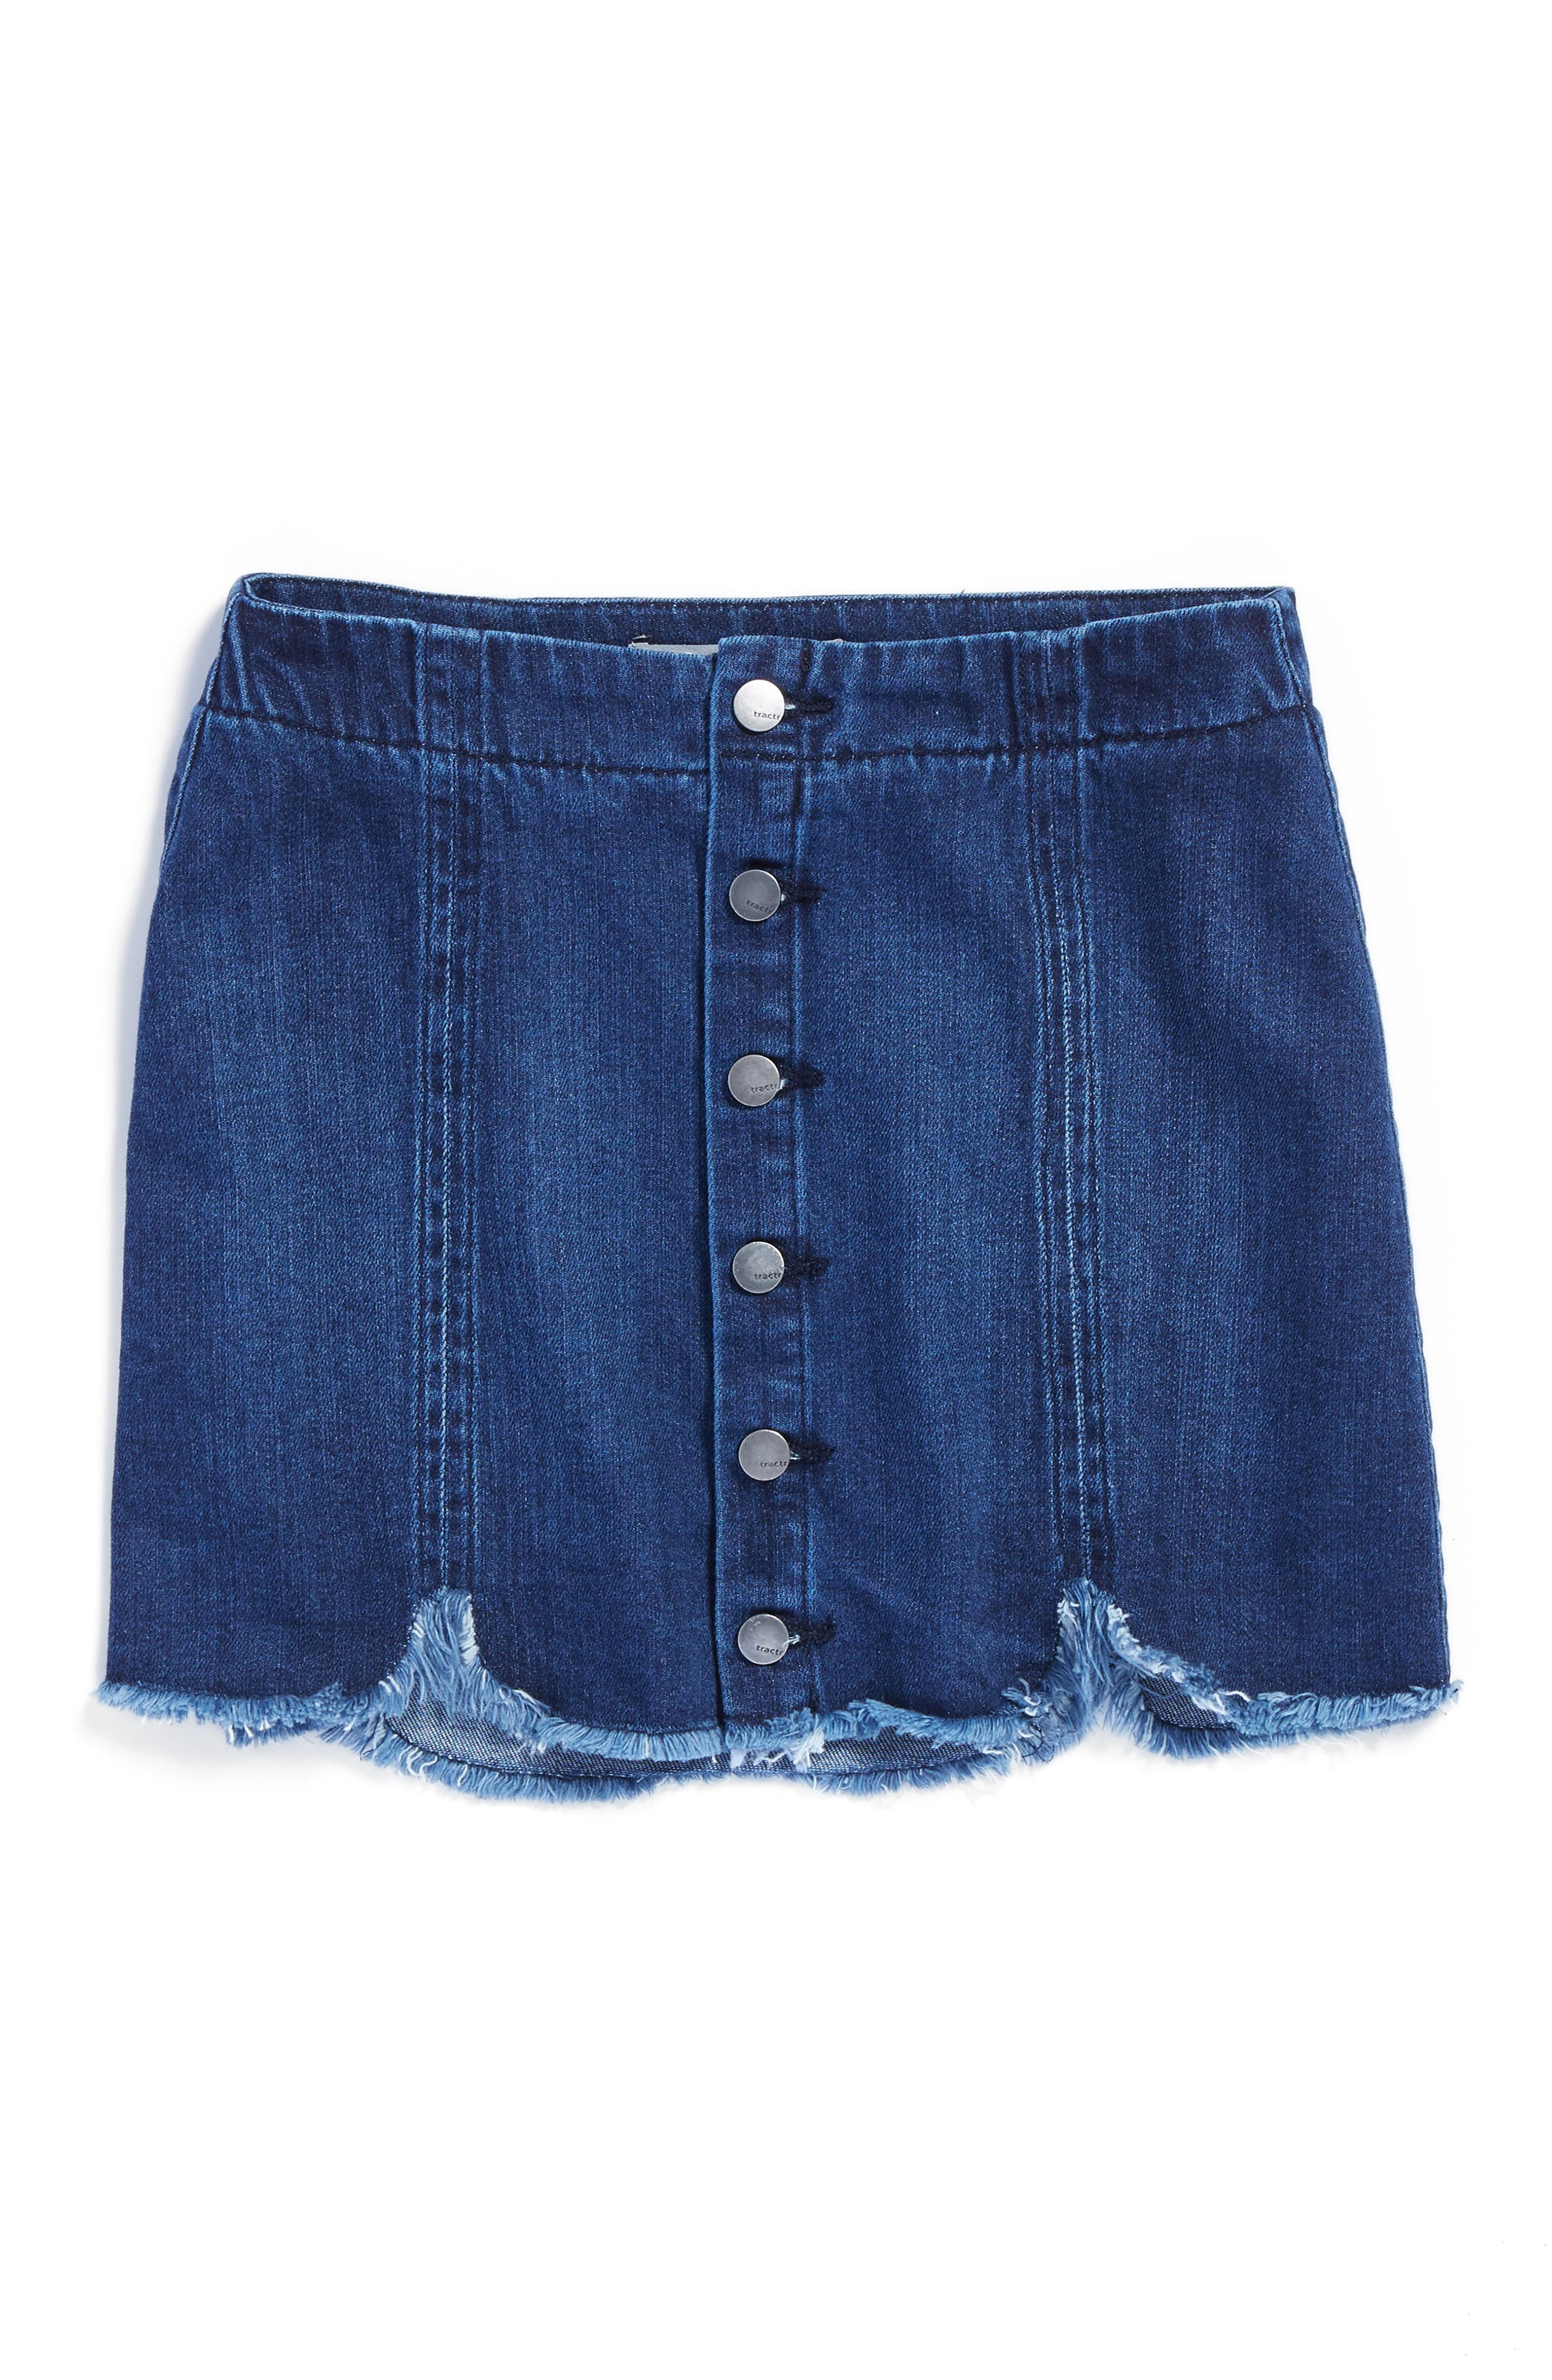 Alternate Image 1 Selected - Tractr Frayed Scallop Denim Skirt (Big Girls)